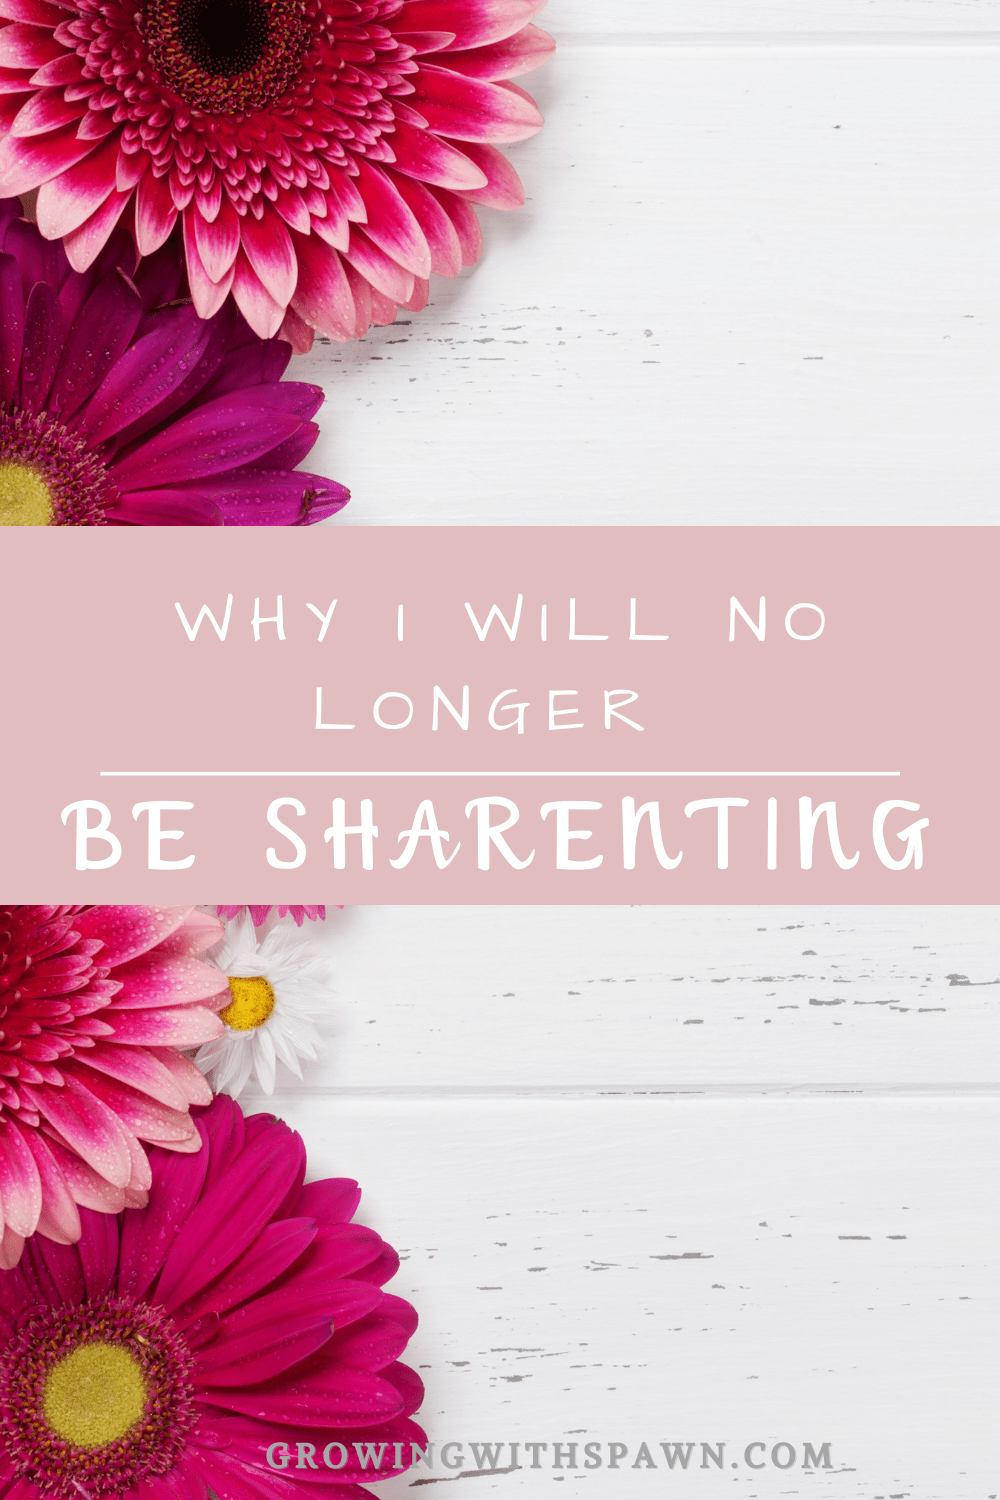 Why I will no longer be sharenting - Growing With Spawn